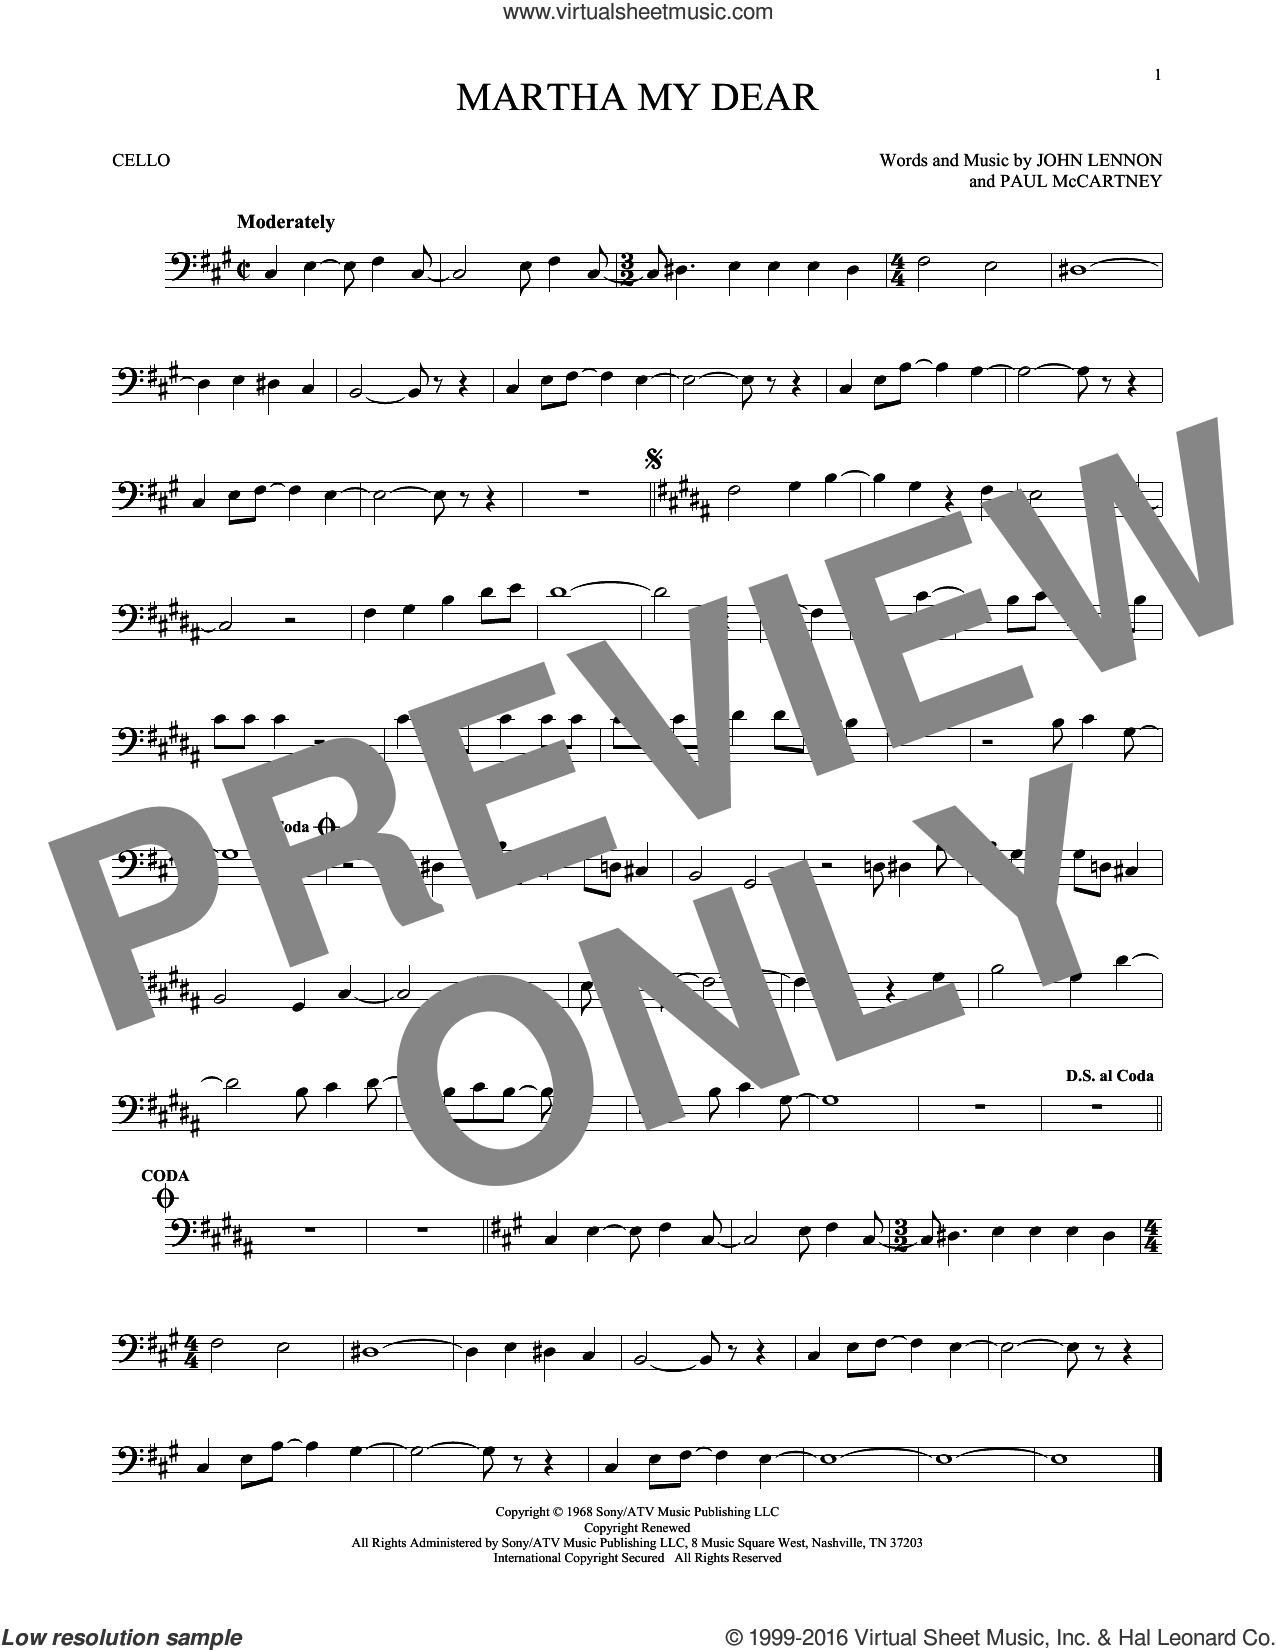 Martha My Dear sheet music for cello solo by The Beatles, John Lennon and Paul McCartney, intermediate skill level